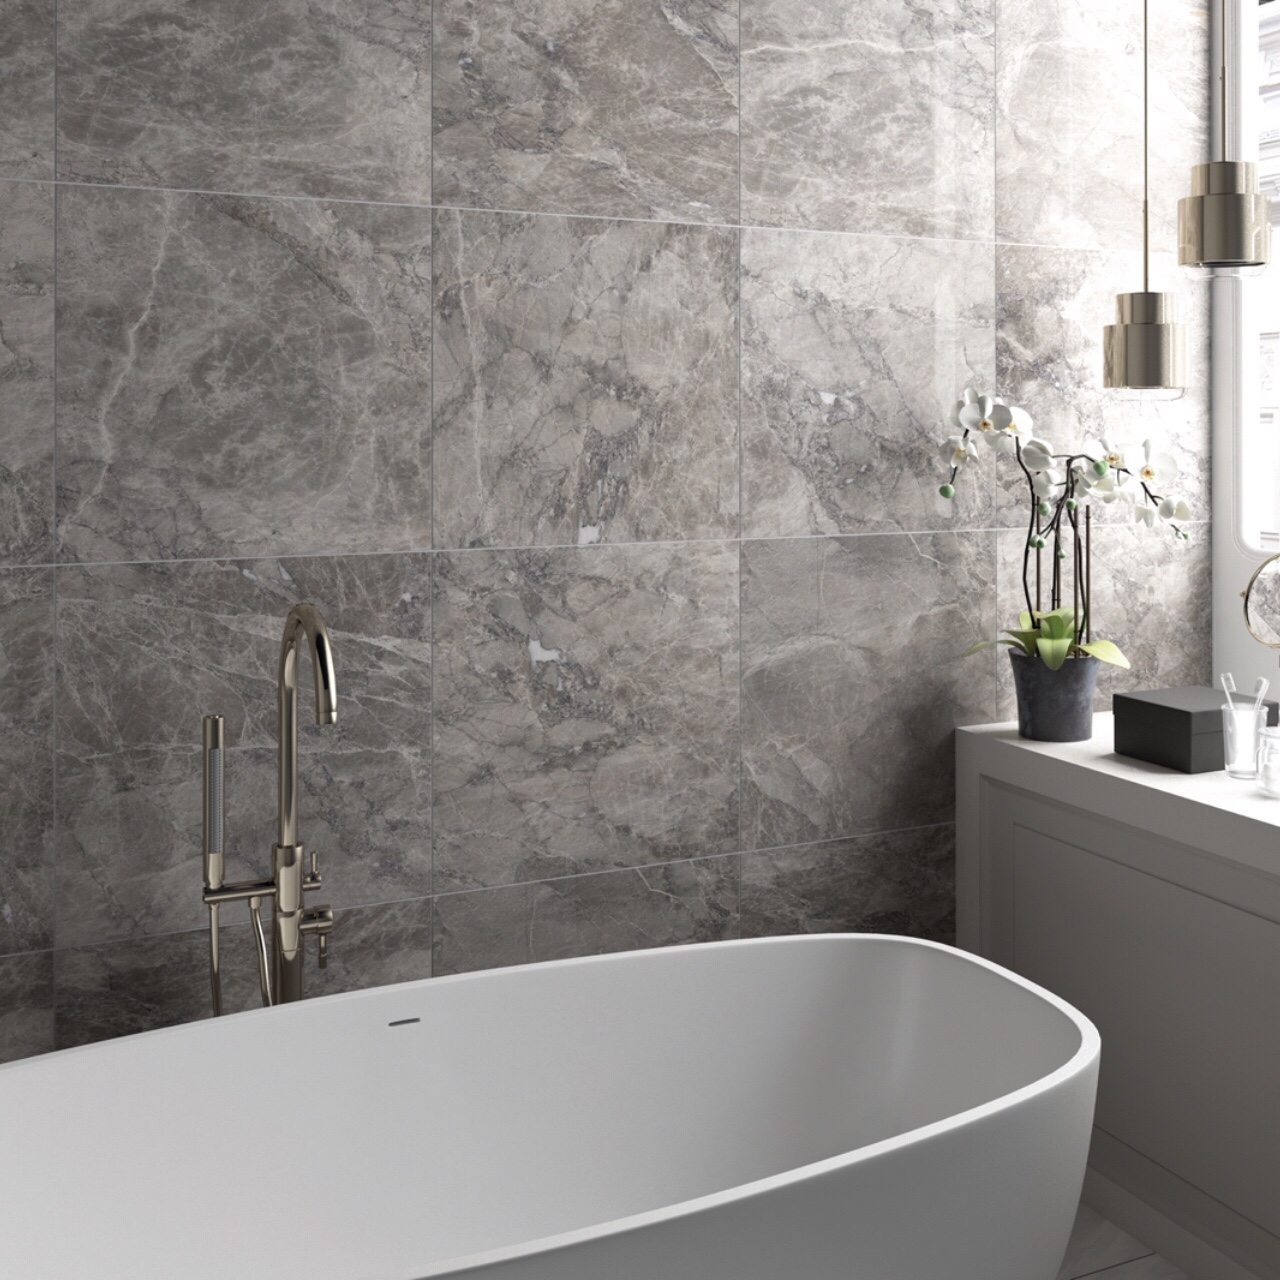 Lux Grigio Polished Tile Factory Outlet